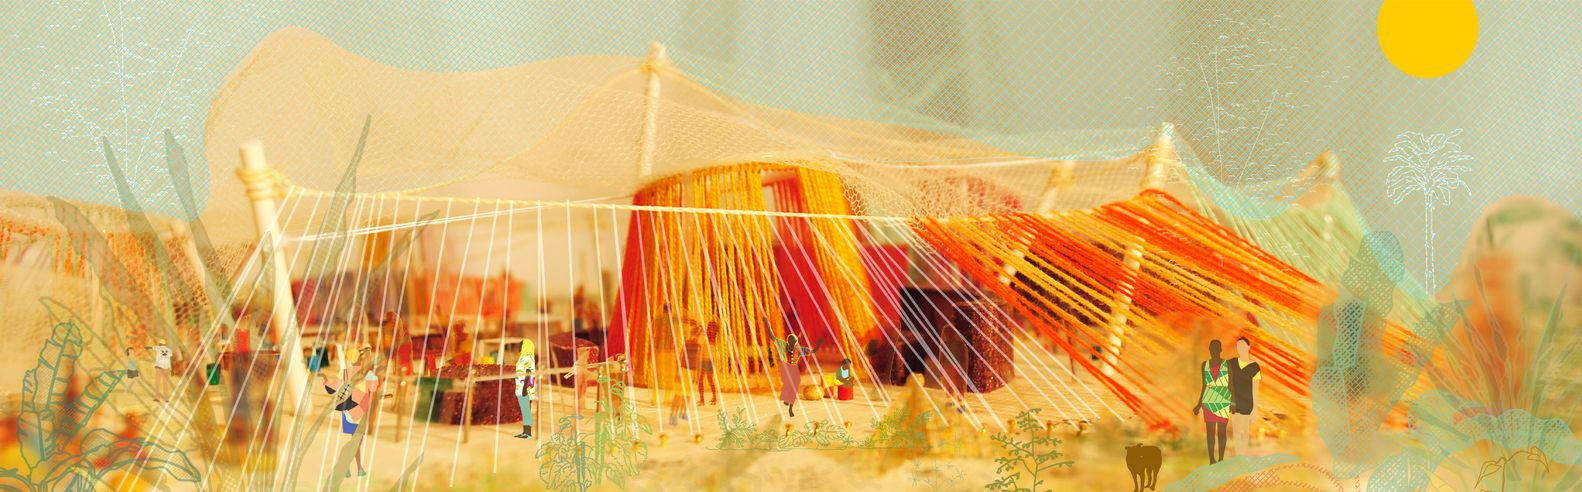 Gallery of Bee Breeders Reveal Winning Designs for a LGBT Youth Asylum Center in Uganda - 17